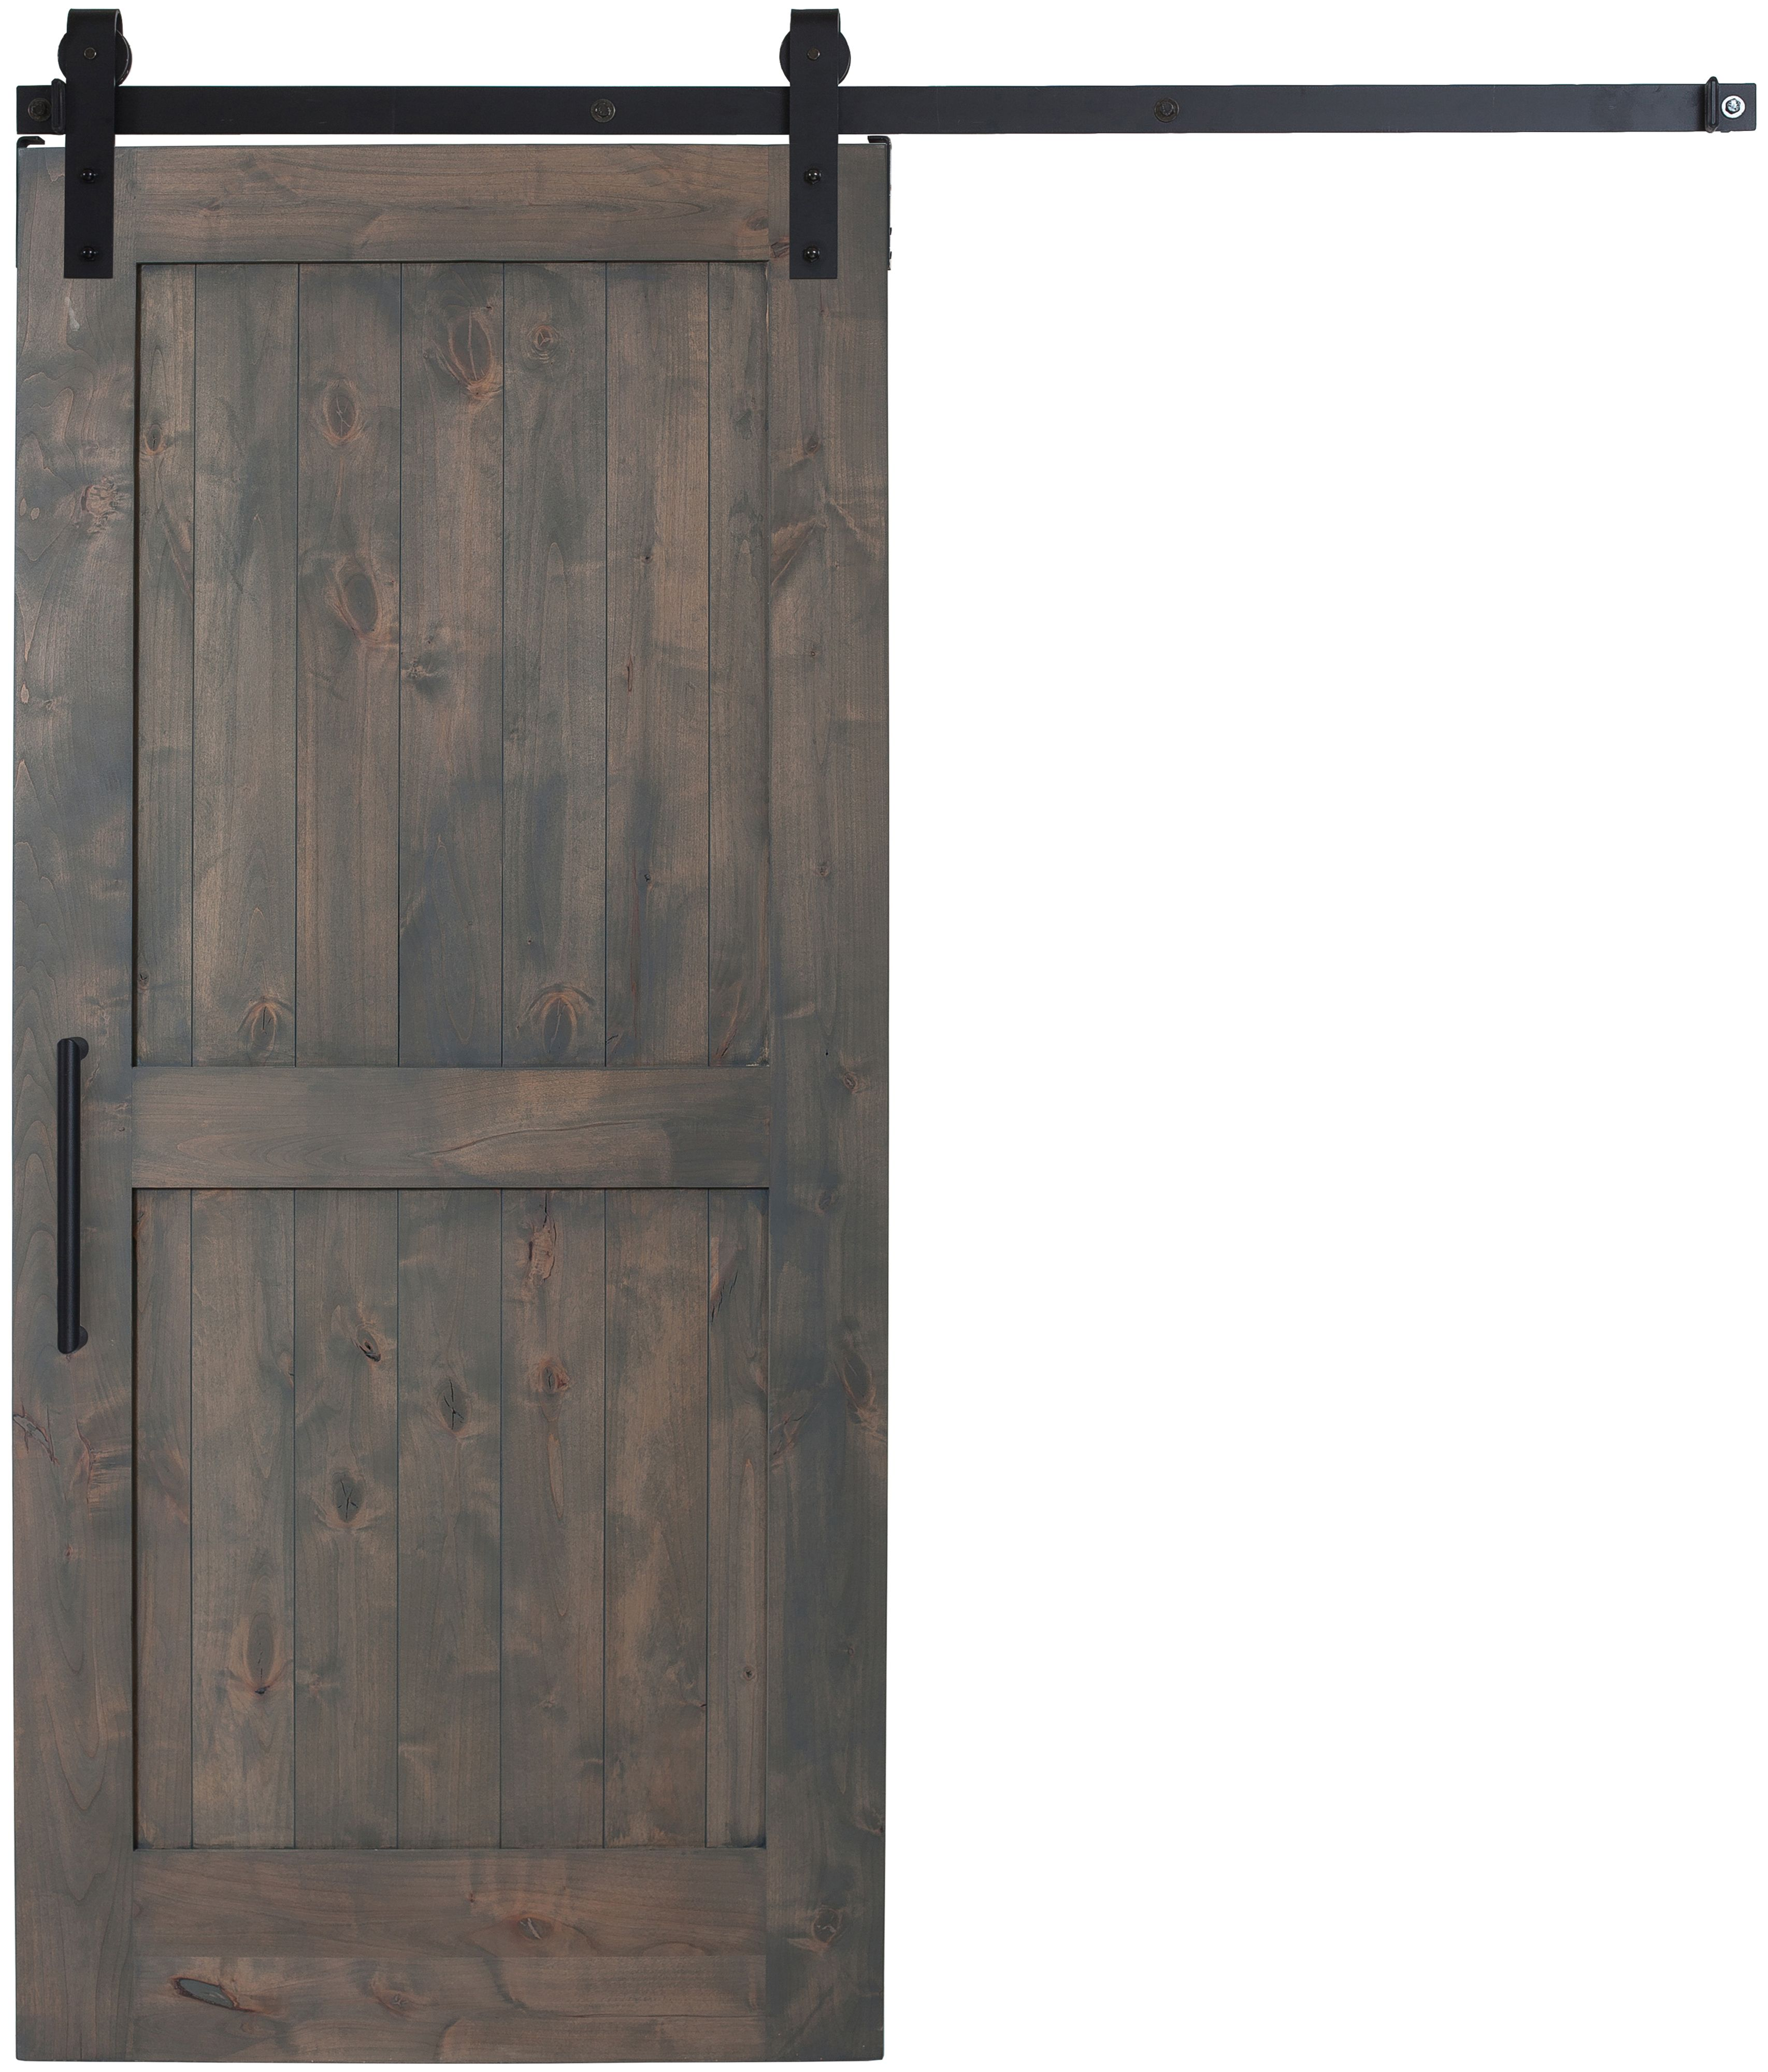 Our British Brace Barn Door In Special Walnut Stain Looks